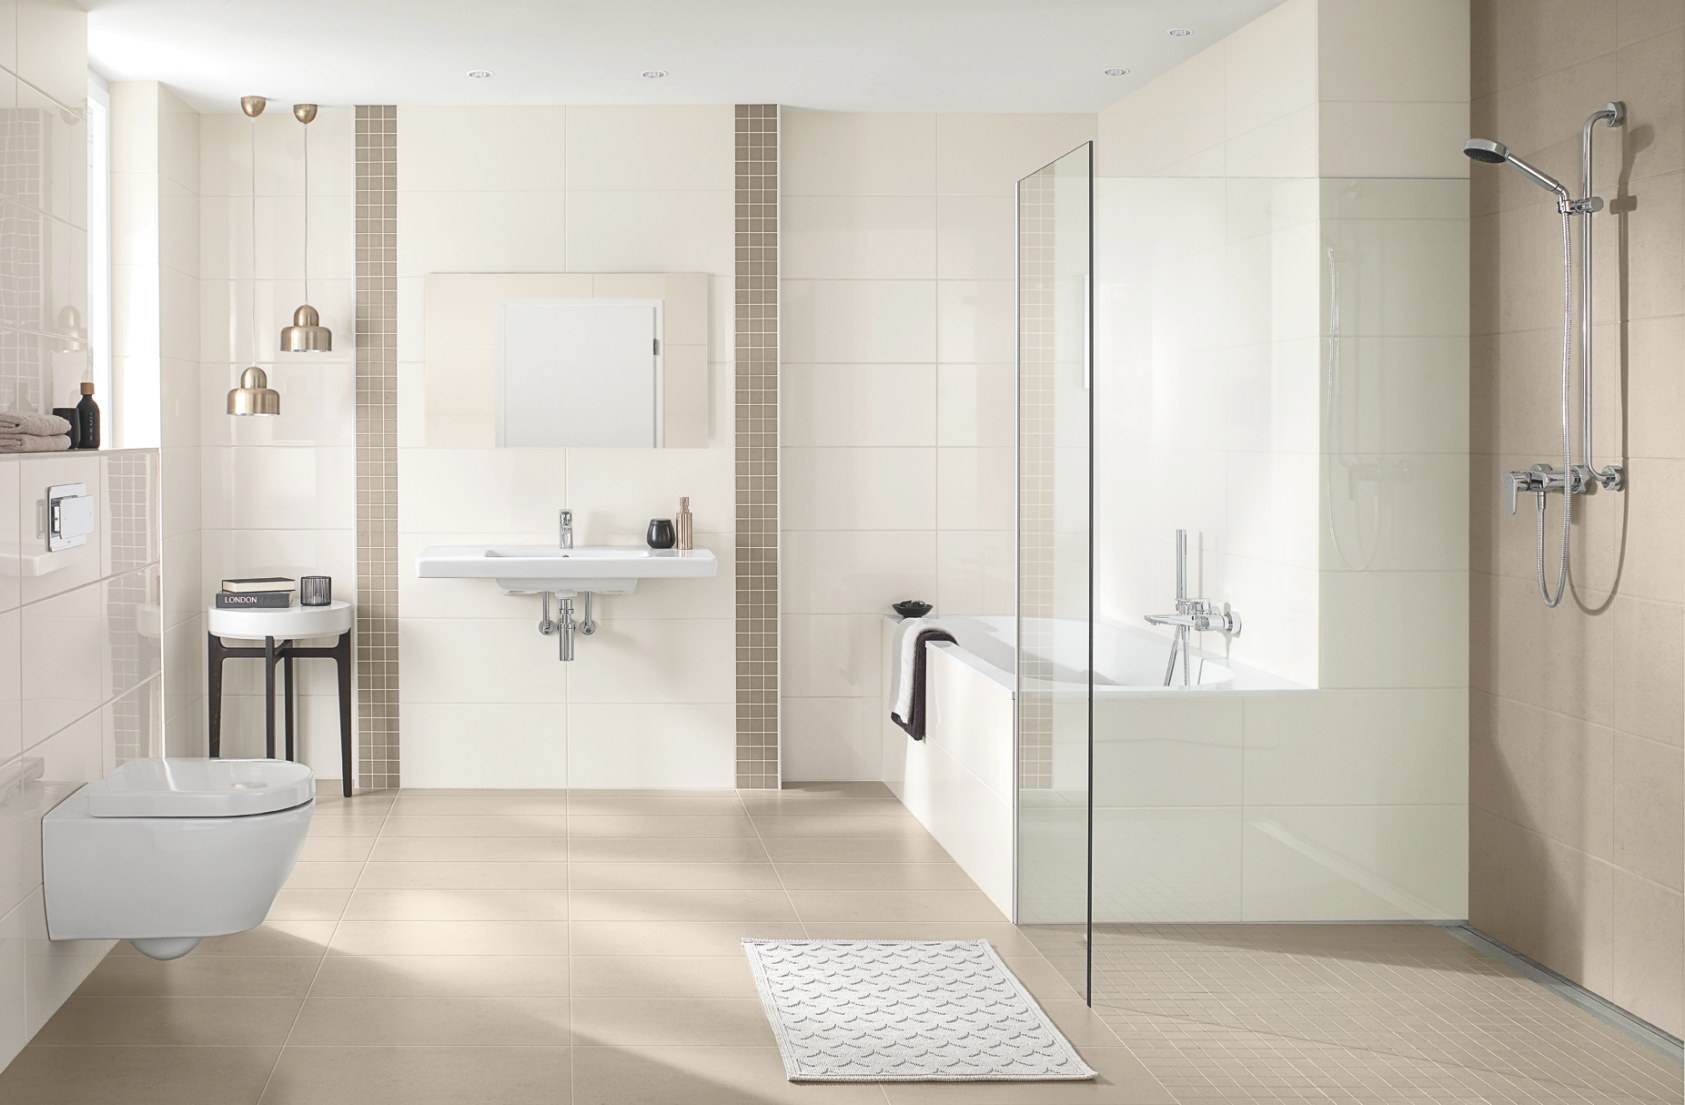 Villeroy & Boch White & Cream Tiles – Ideal Bathrooms & Tiles with regard to Cream And White Bathroom